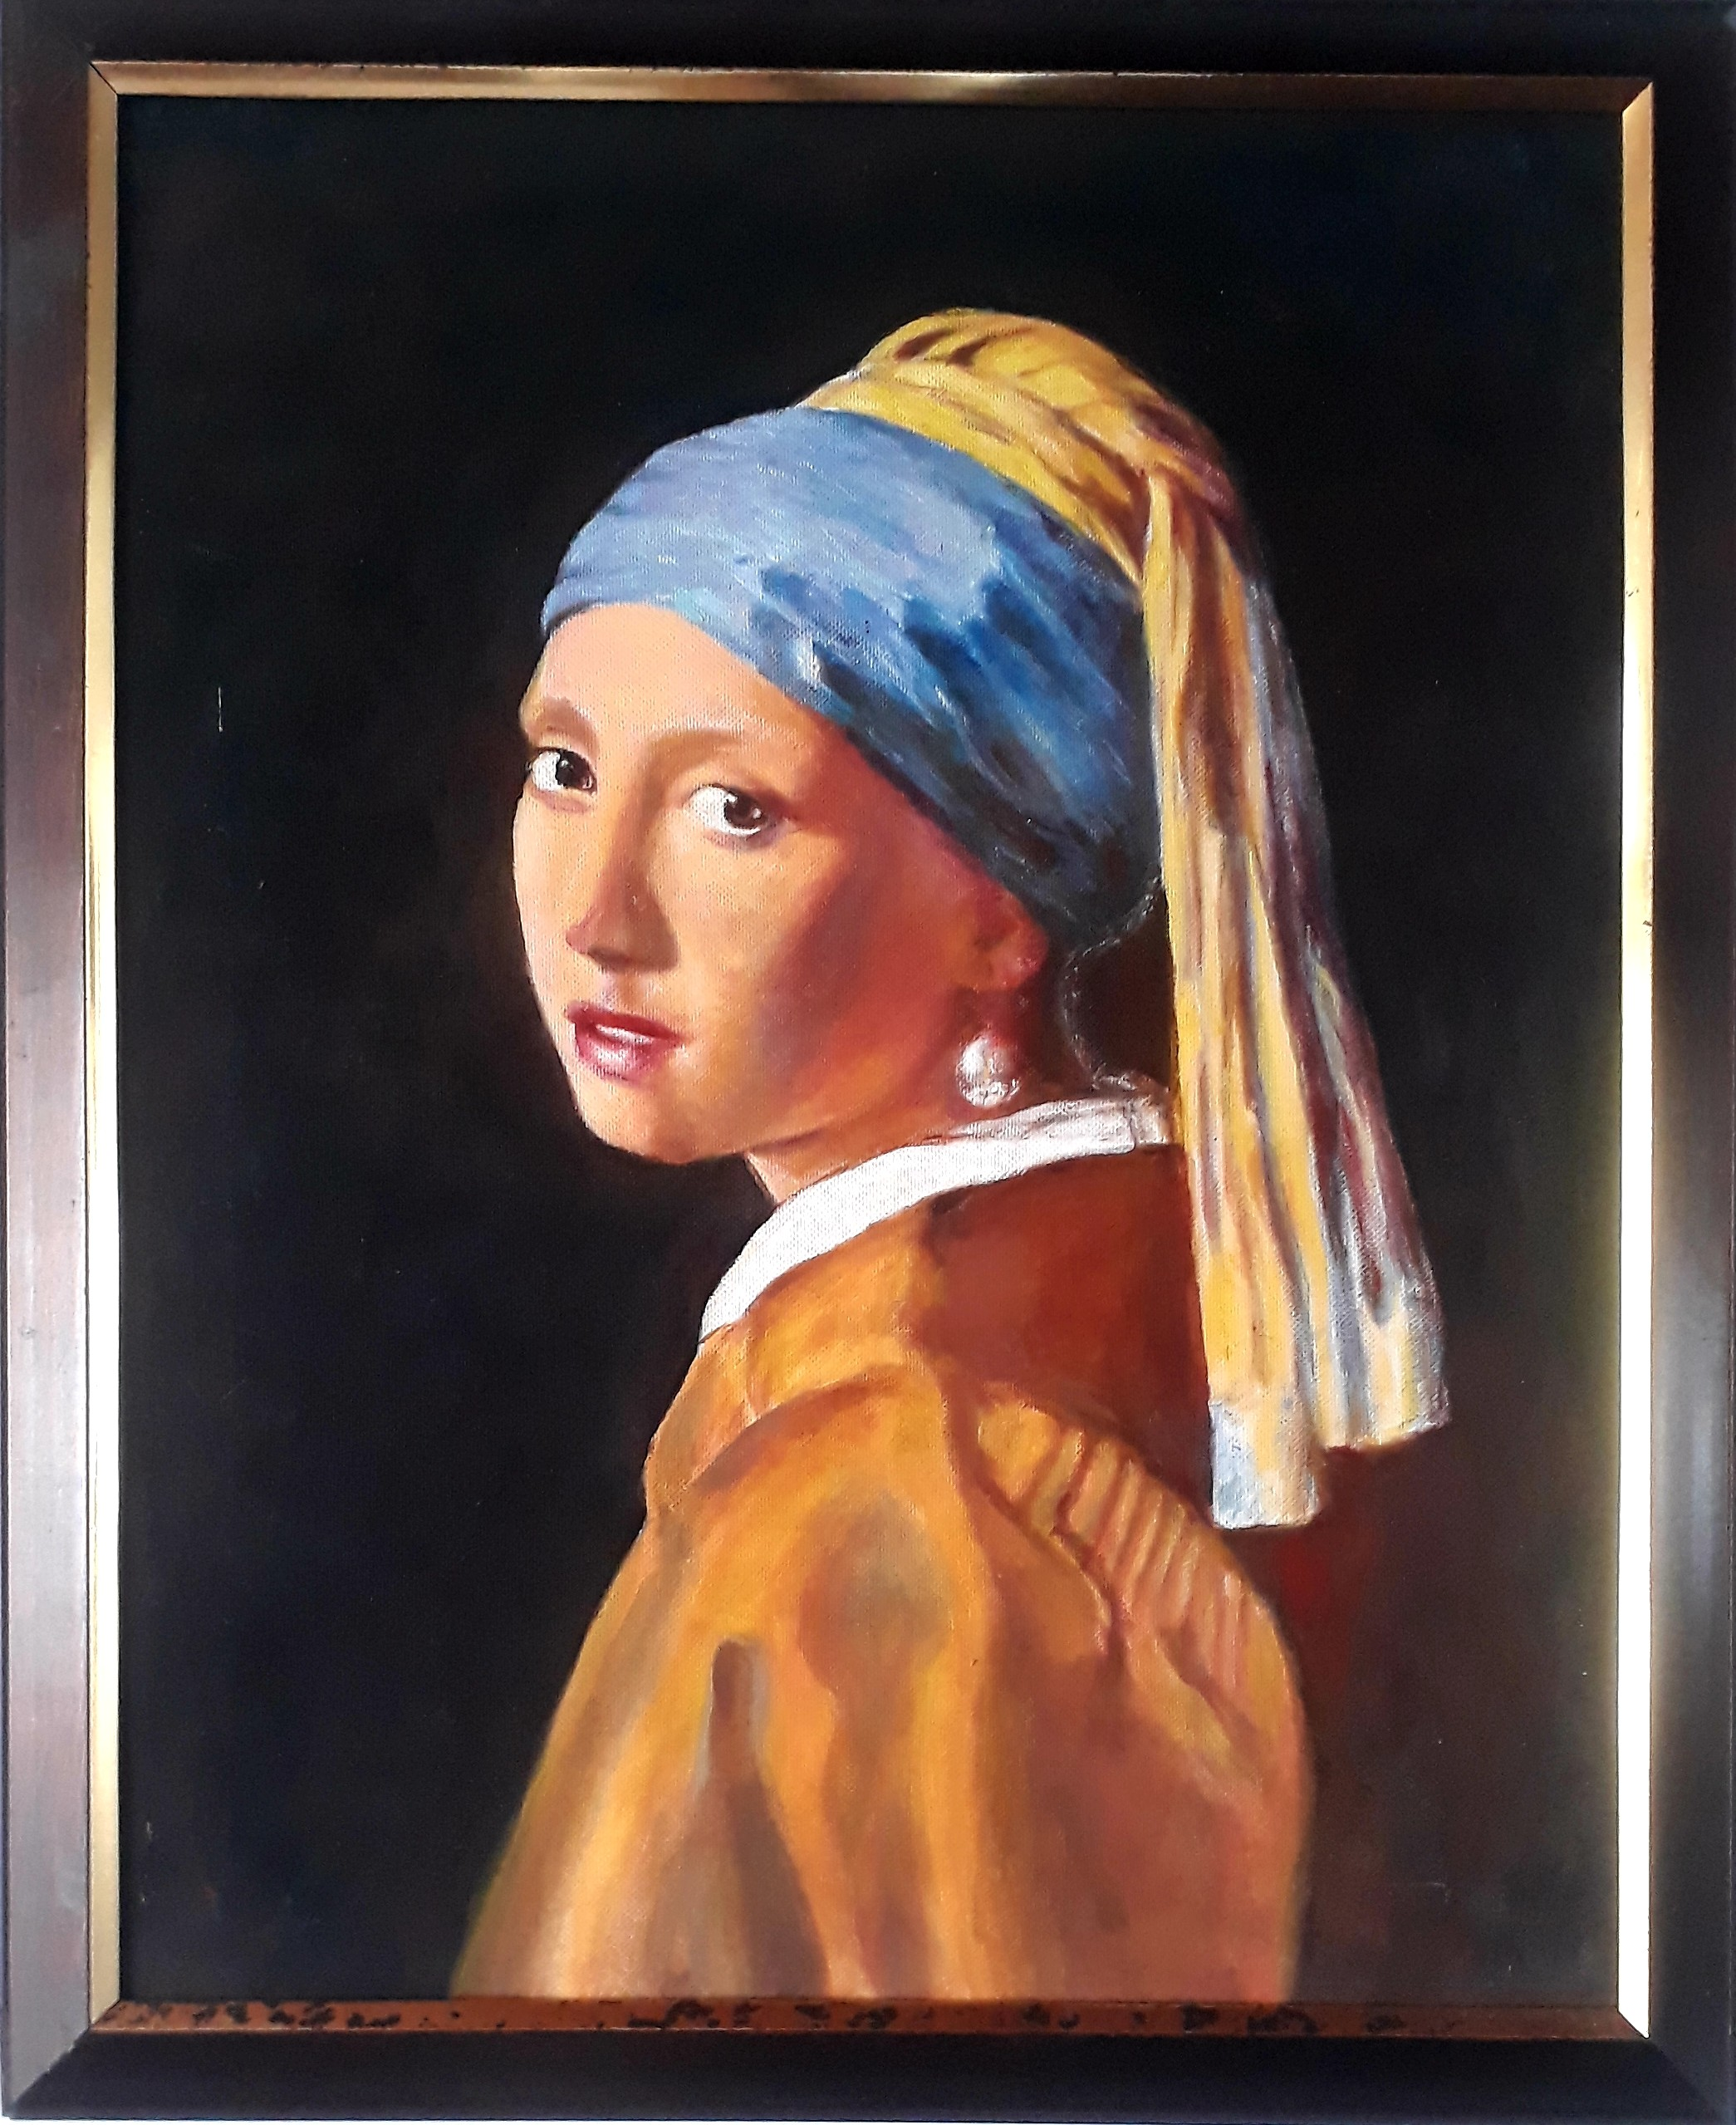 Girl with a pearl earring by Brindley Jayatunga